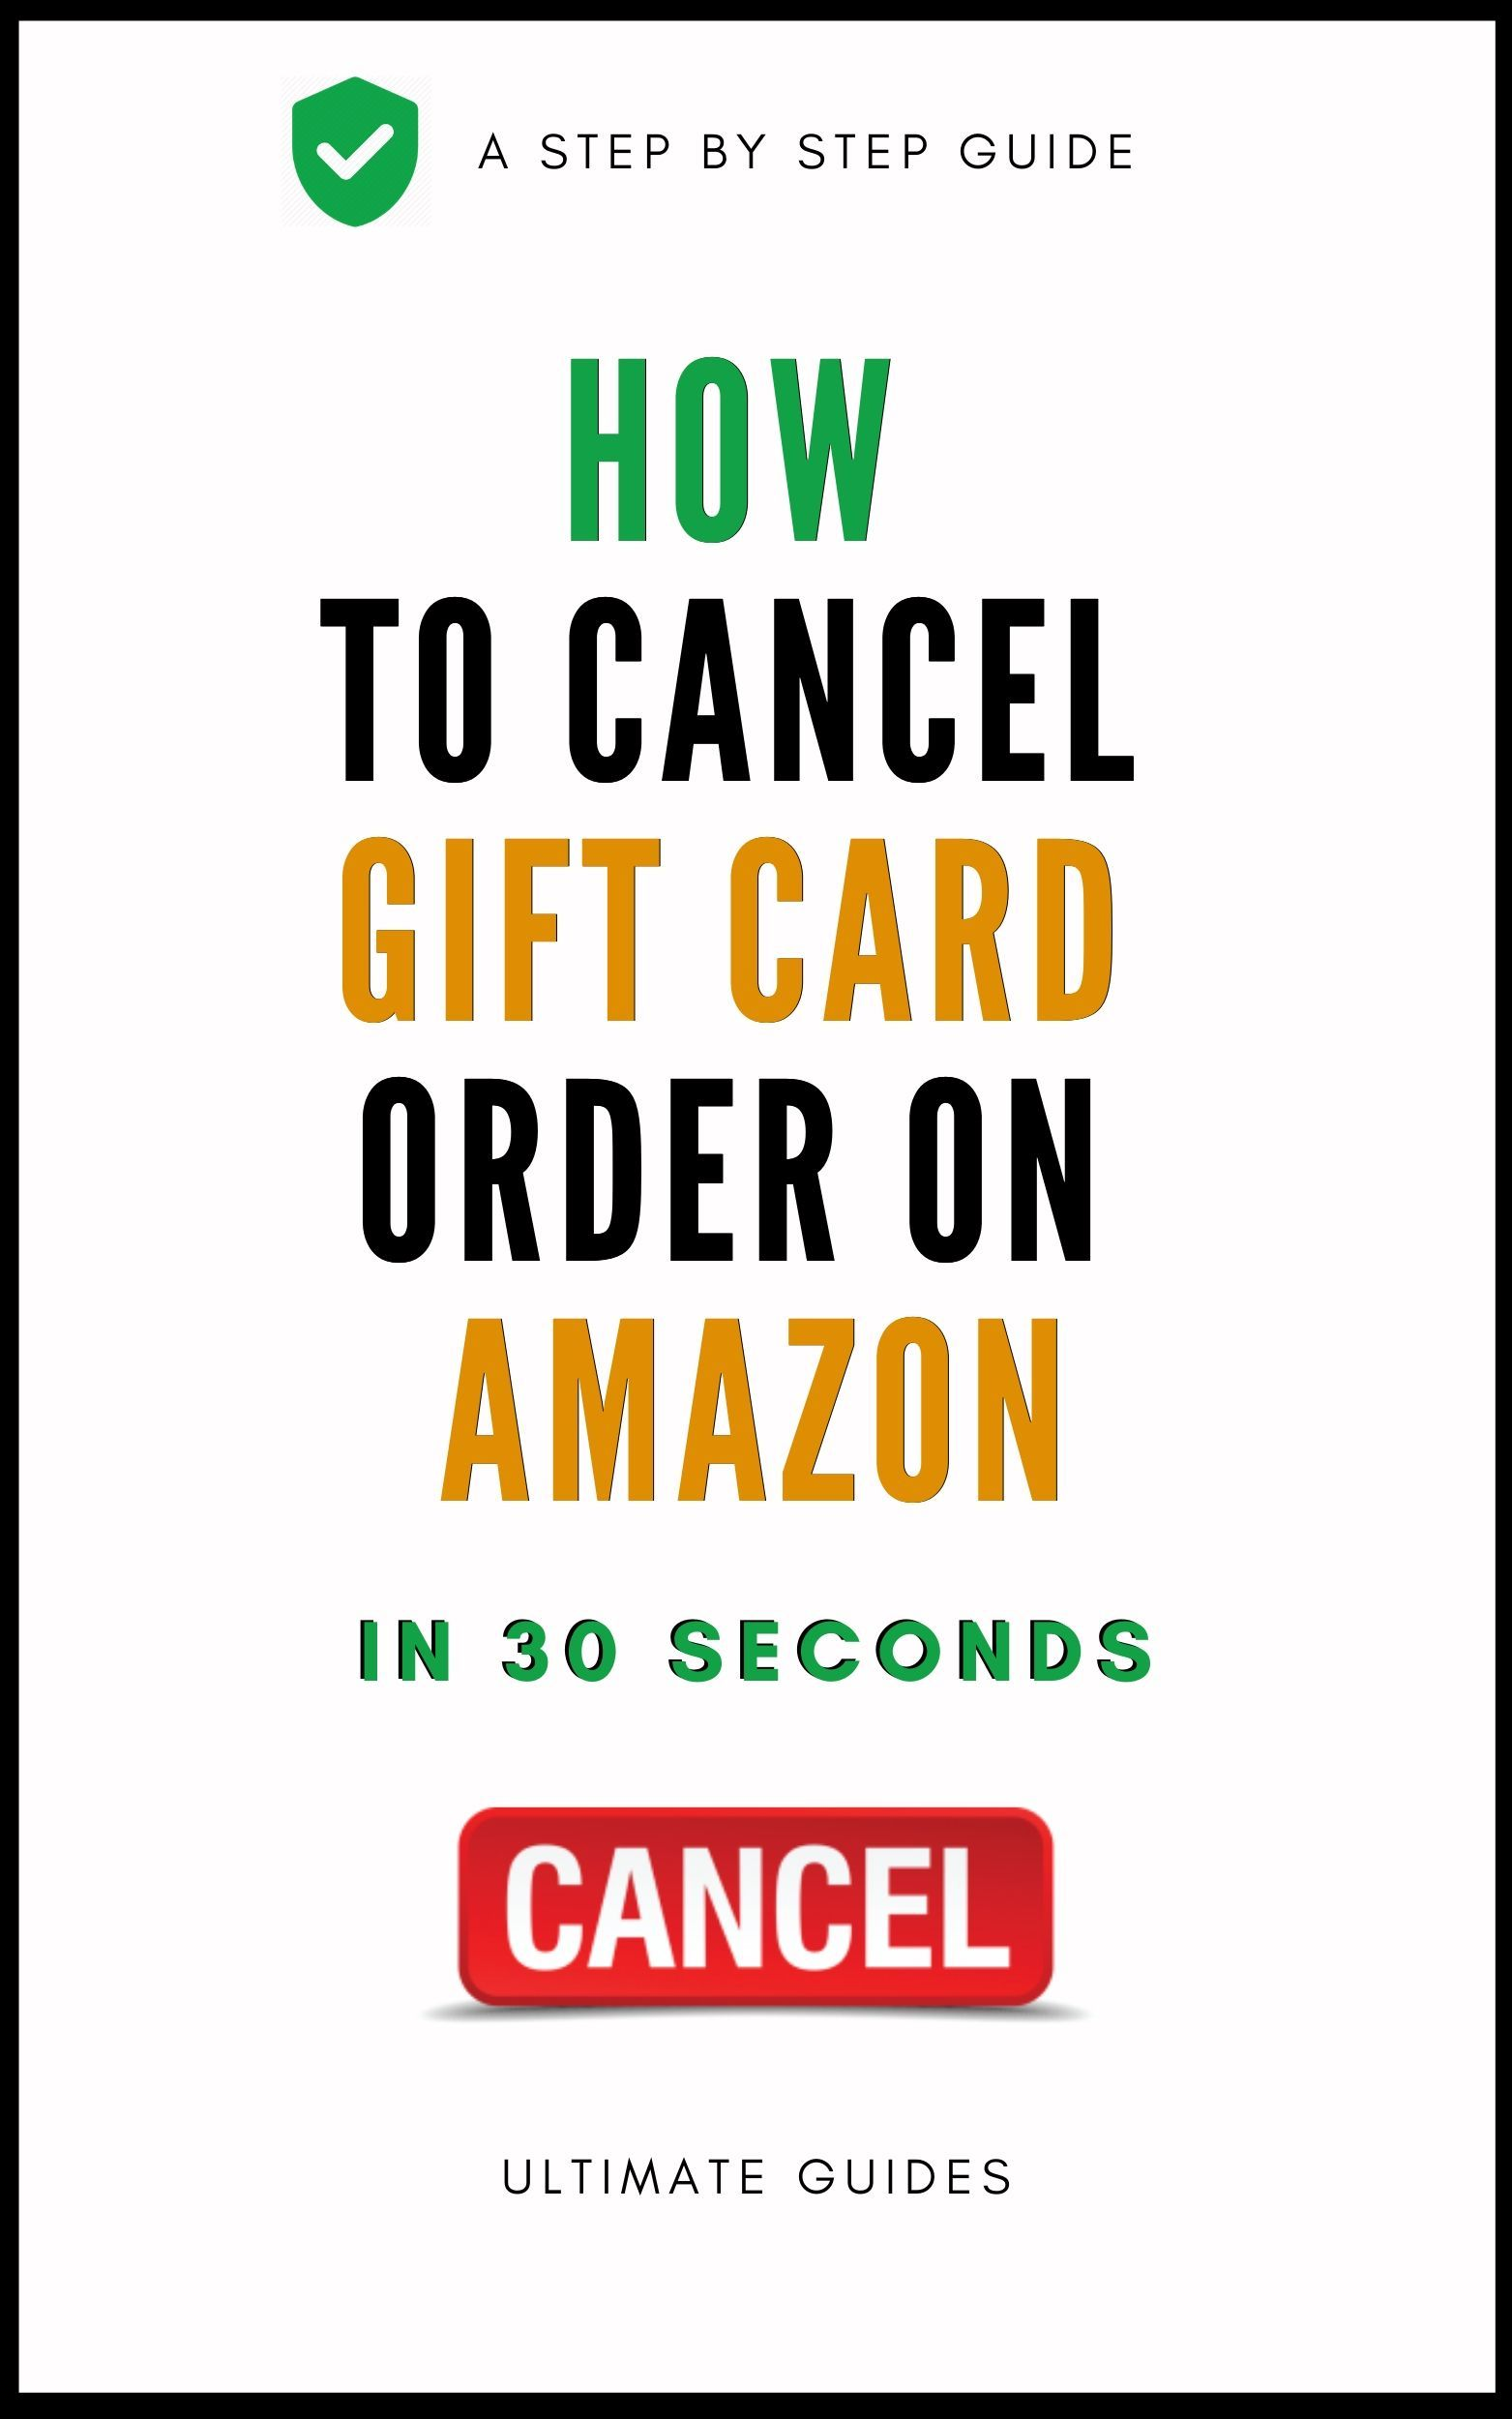 How To Cancel Gift Card Order Gift Card Cards Amazon Gift Cards